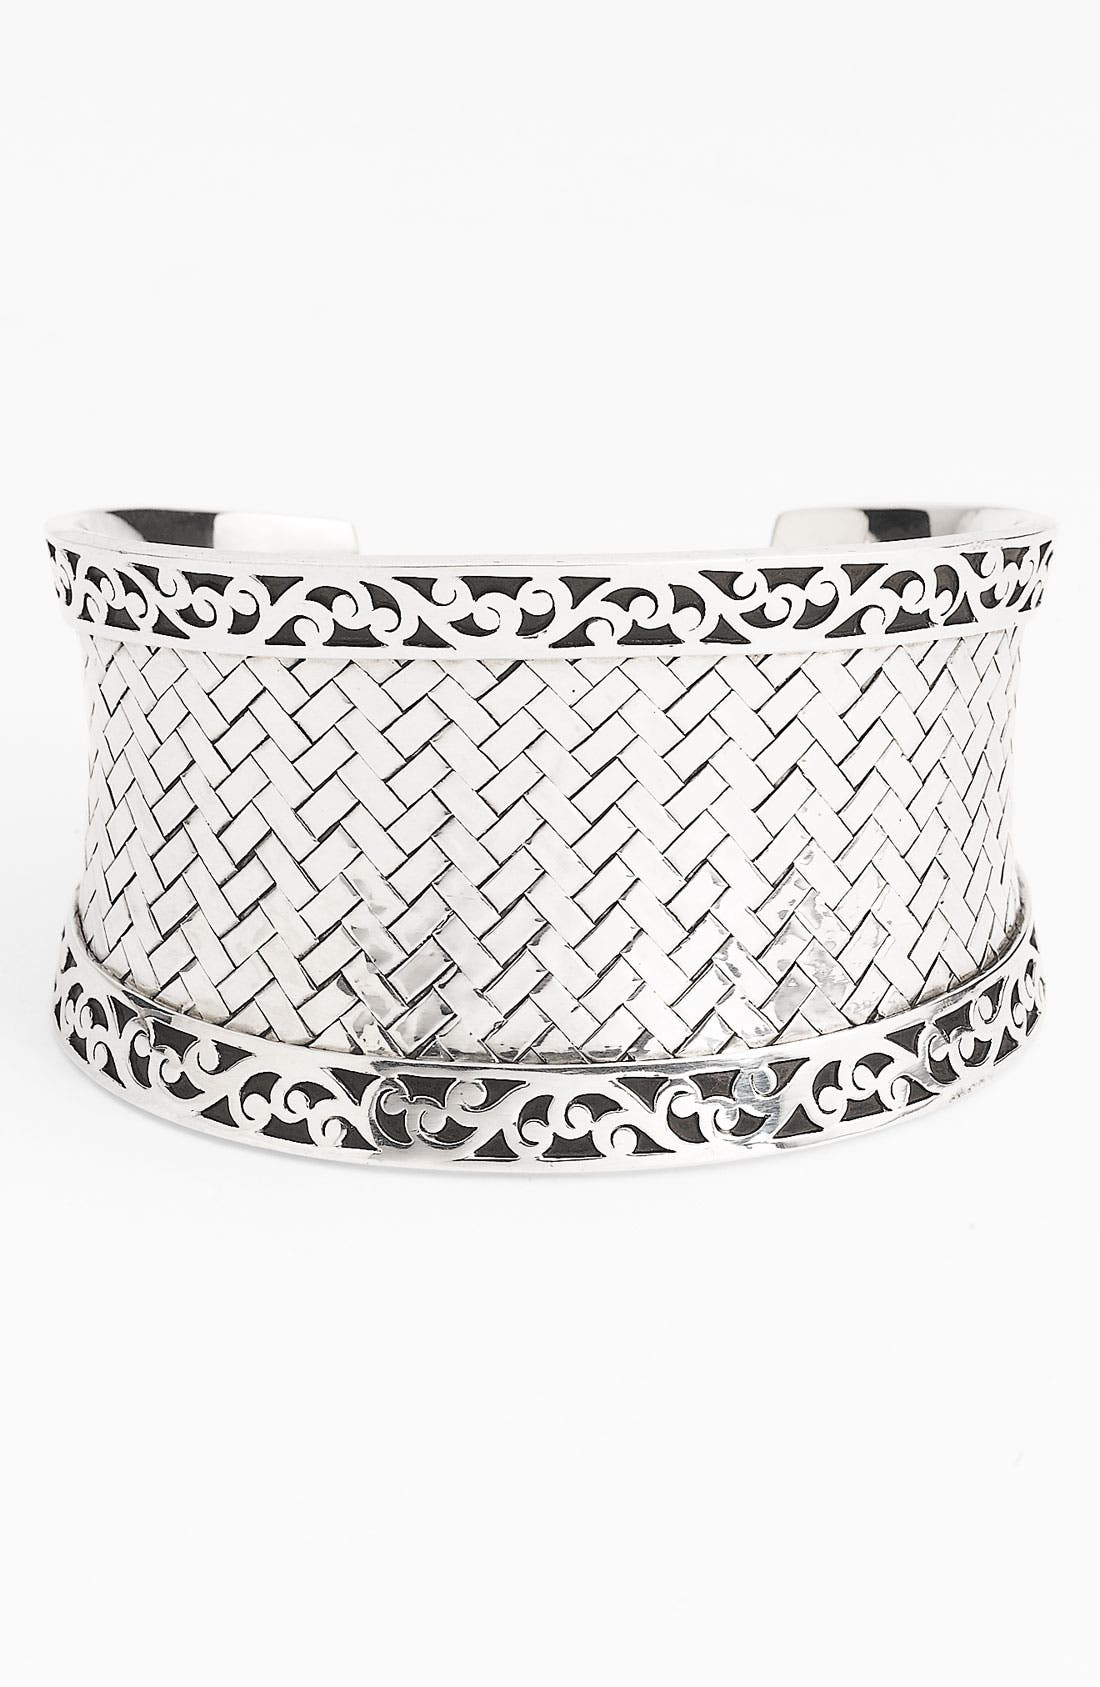 Alternate Image 1 Selected - Lois Hill 'Basket Weave' Cuff